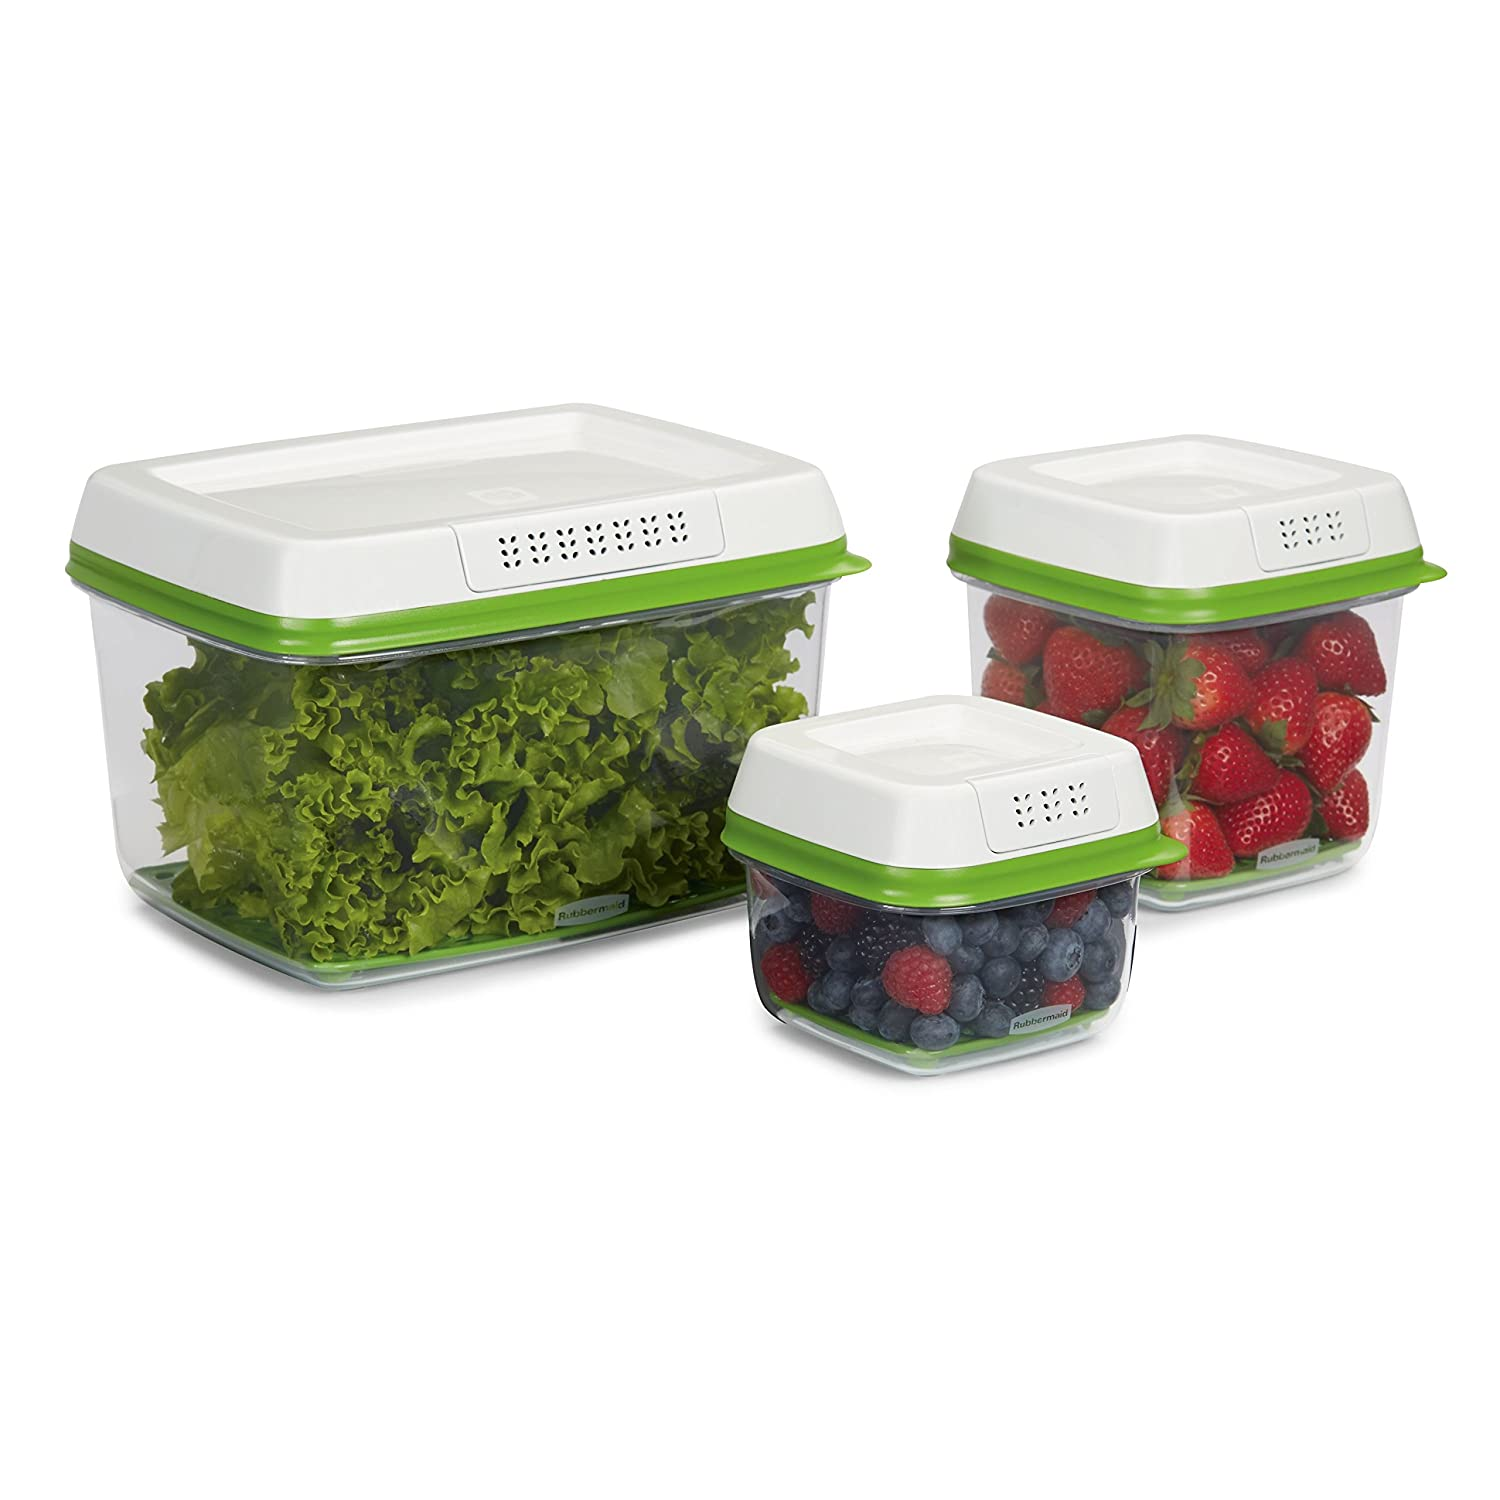 Vegetable Saver Containers Rubbermaid freshworks produce saver 3 piece set amazon home rubbermaid freshworks produce saver 3 piece set amazon home kitchen workwithnaturefo